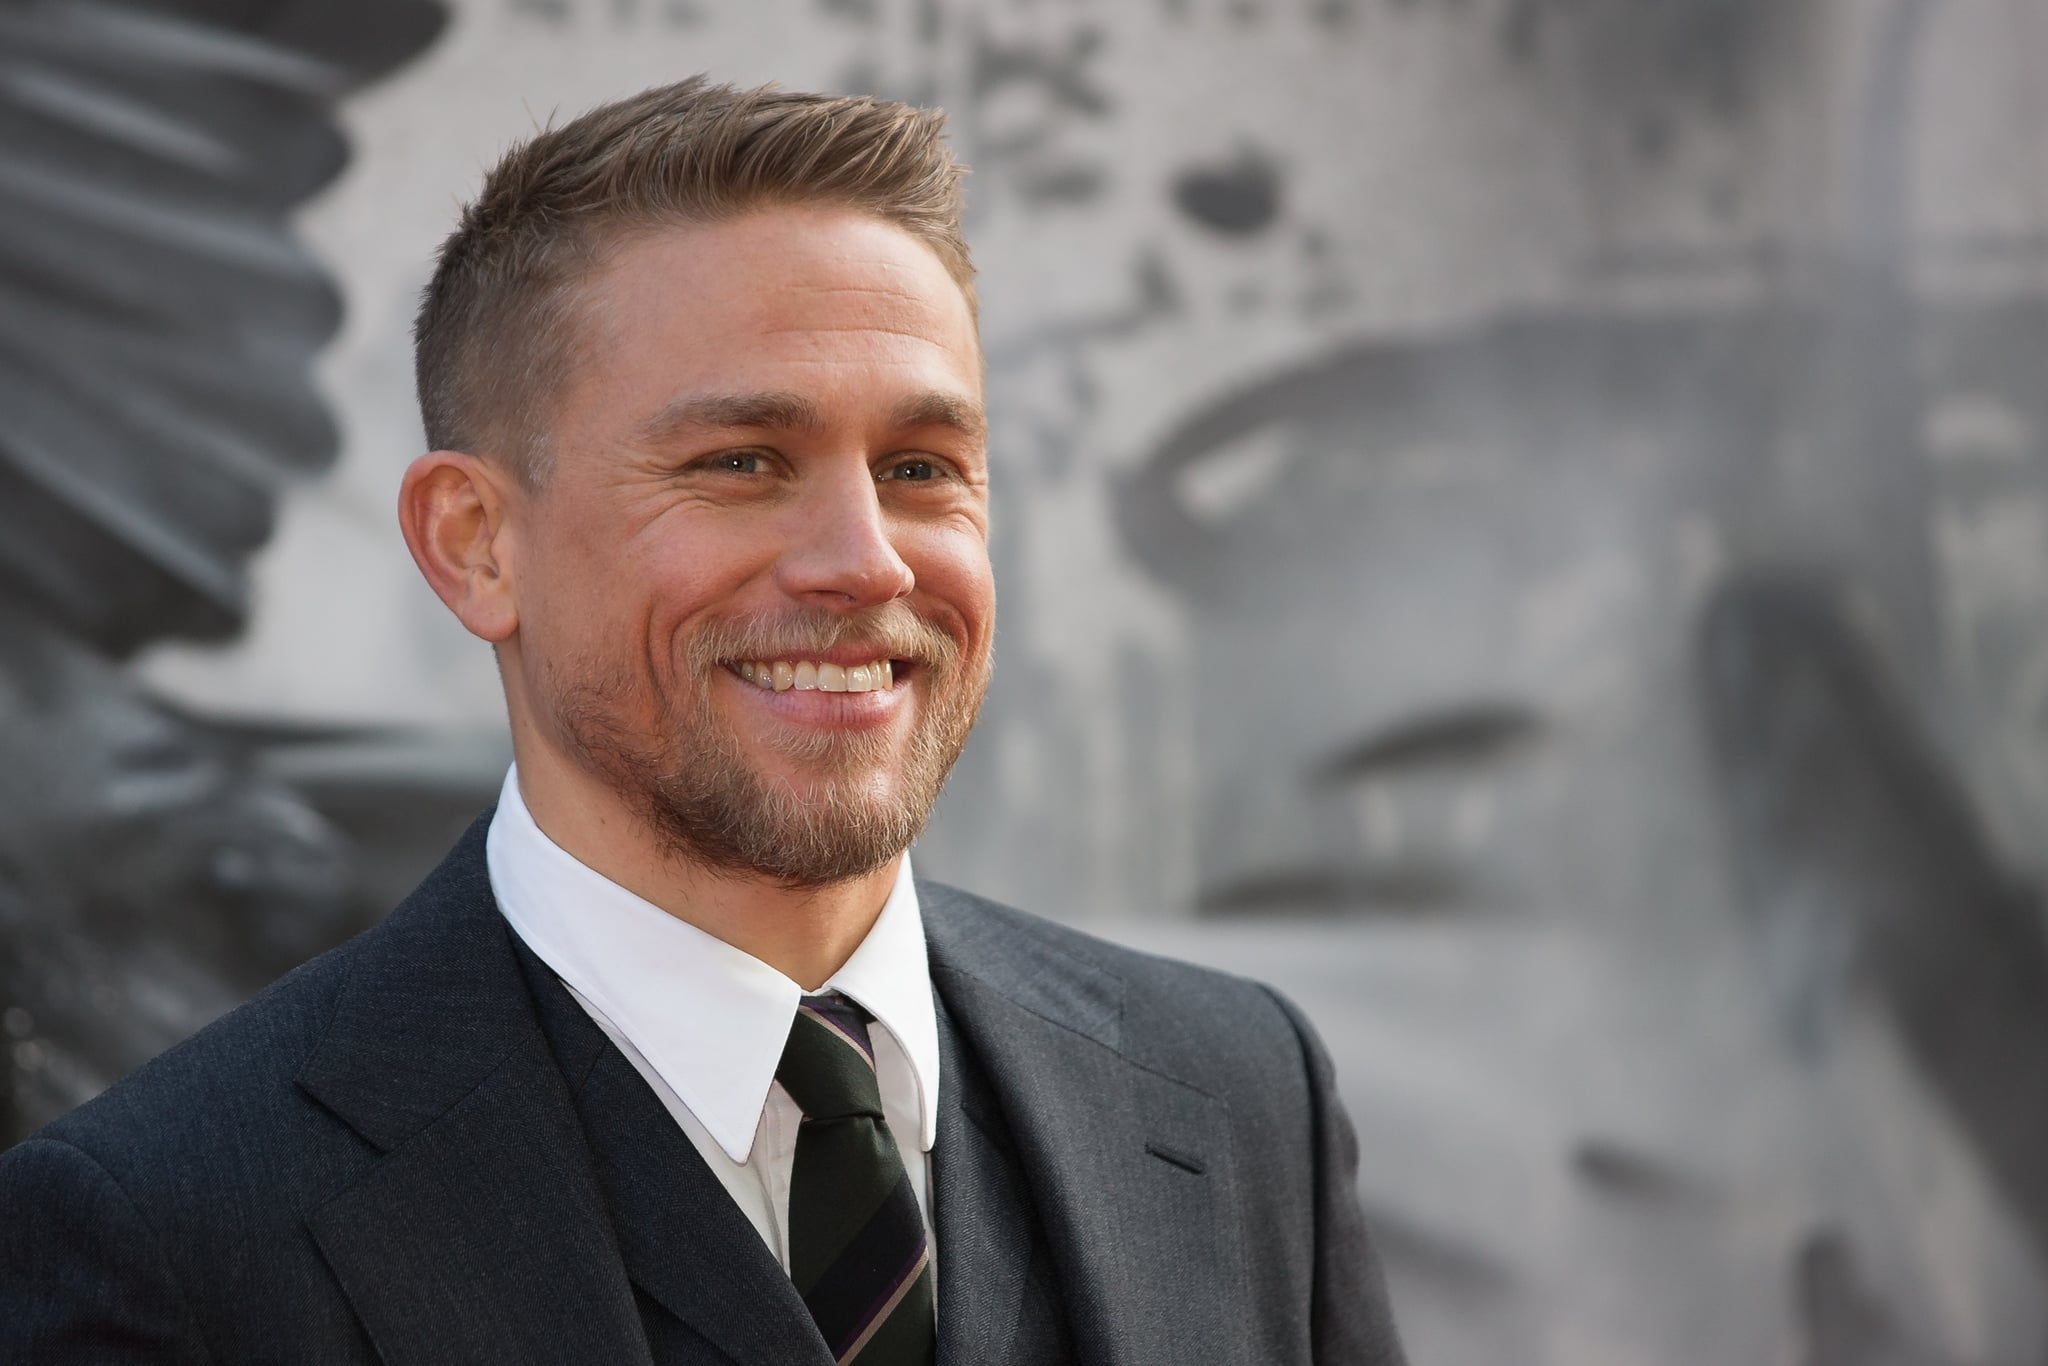 Wait, What?! Charlie Hunnam Turned Down Game of Thrones